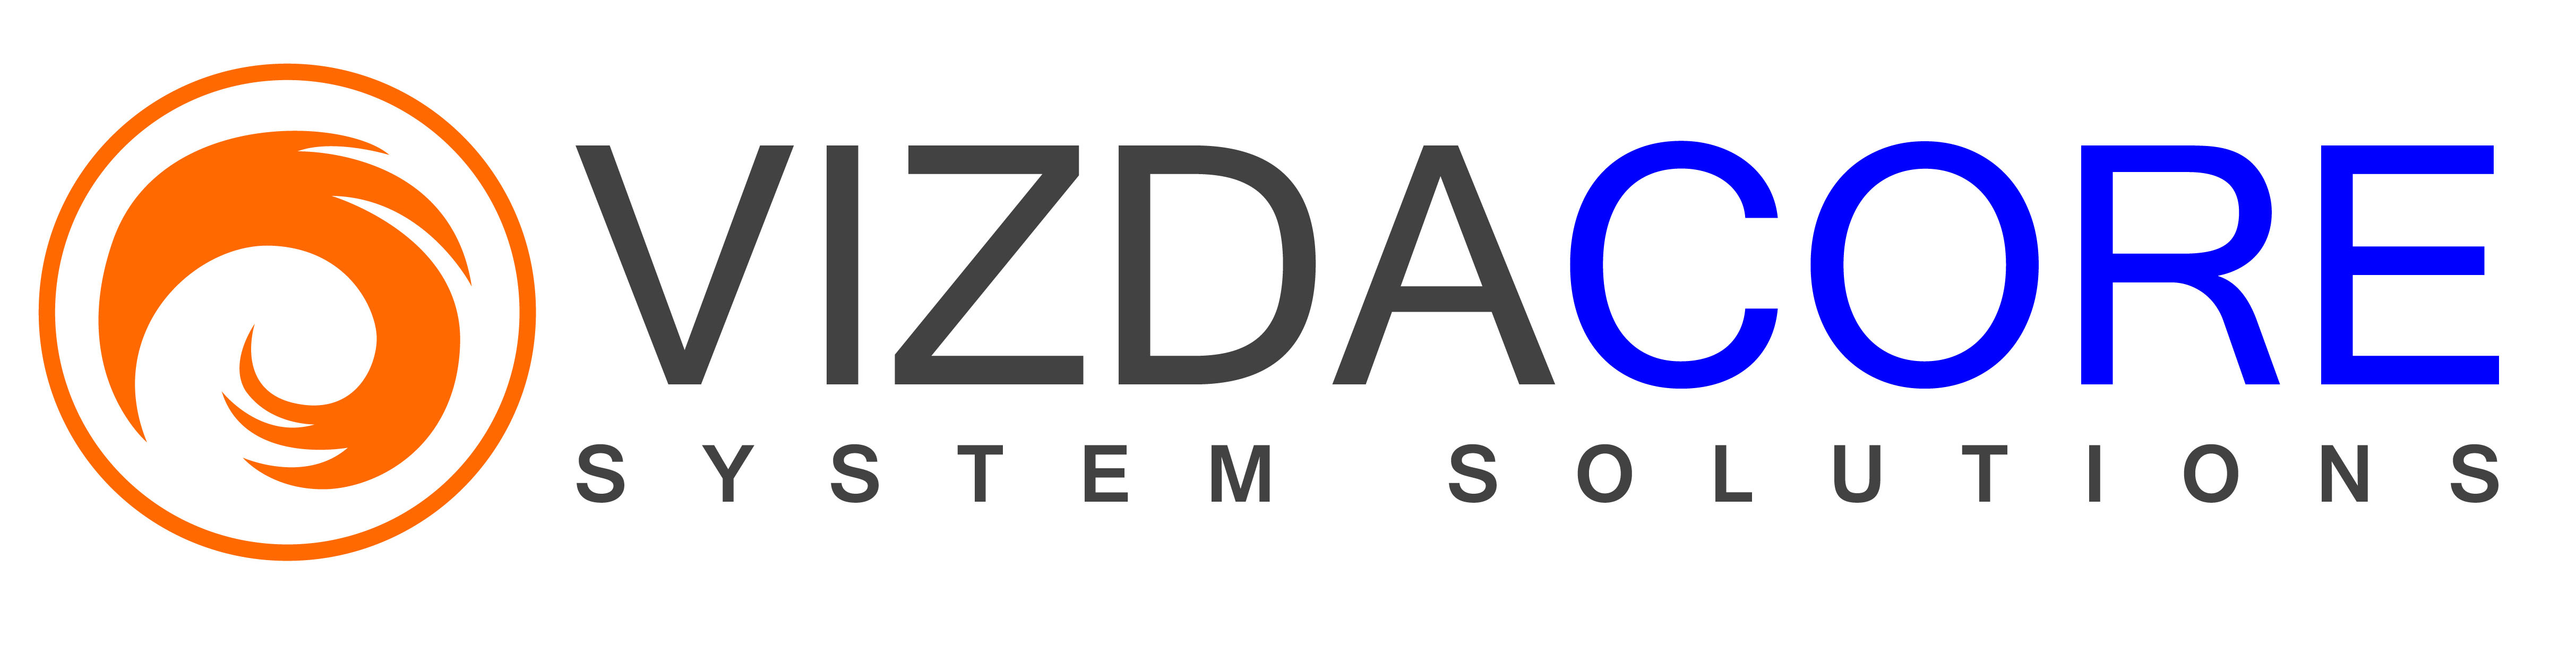 Vizdacore System Solutions